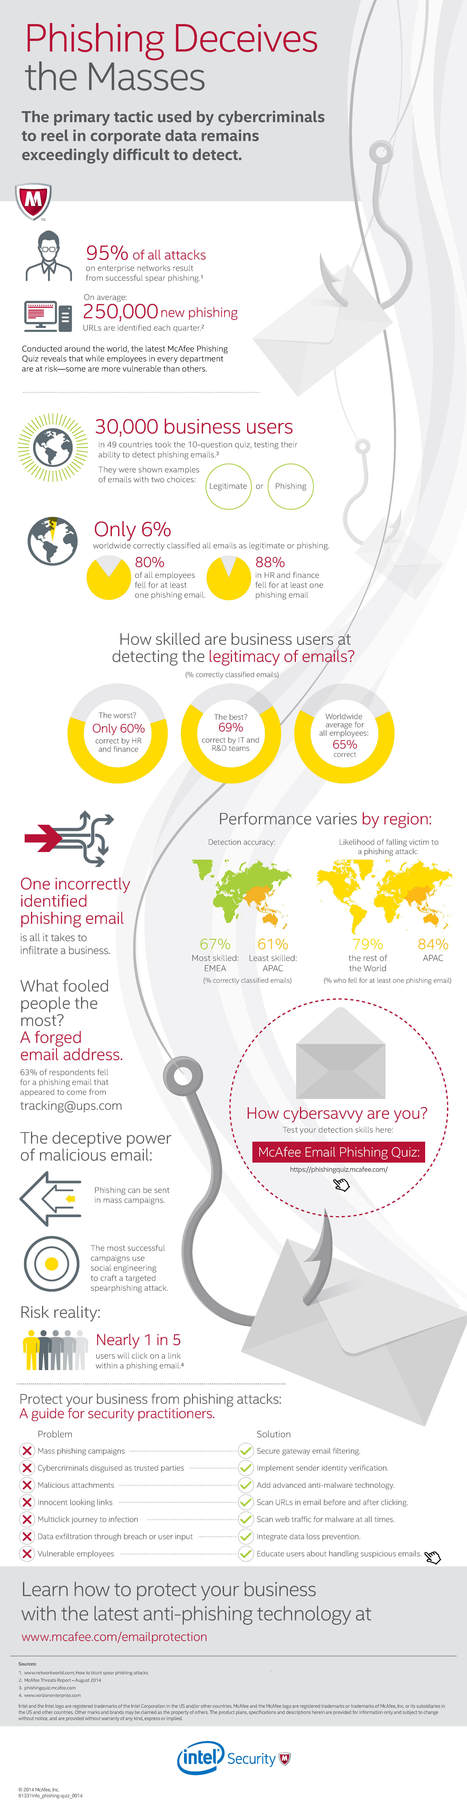 Phishing Deceives the Masses [Infographic] | Linking Literacy & Learning: Research, Reflection, and Practice | Scoop.it